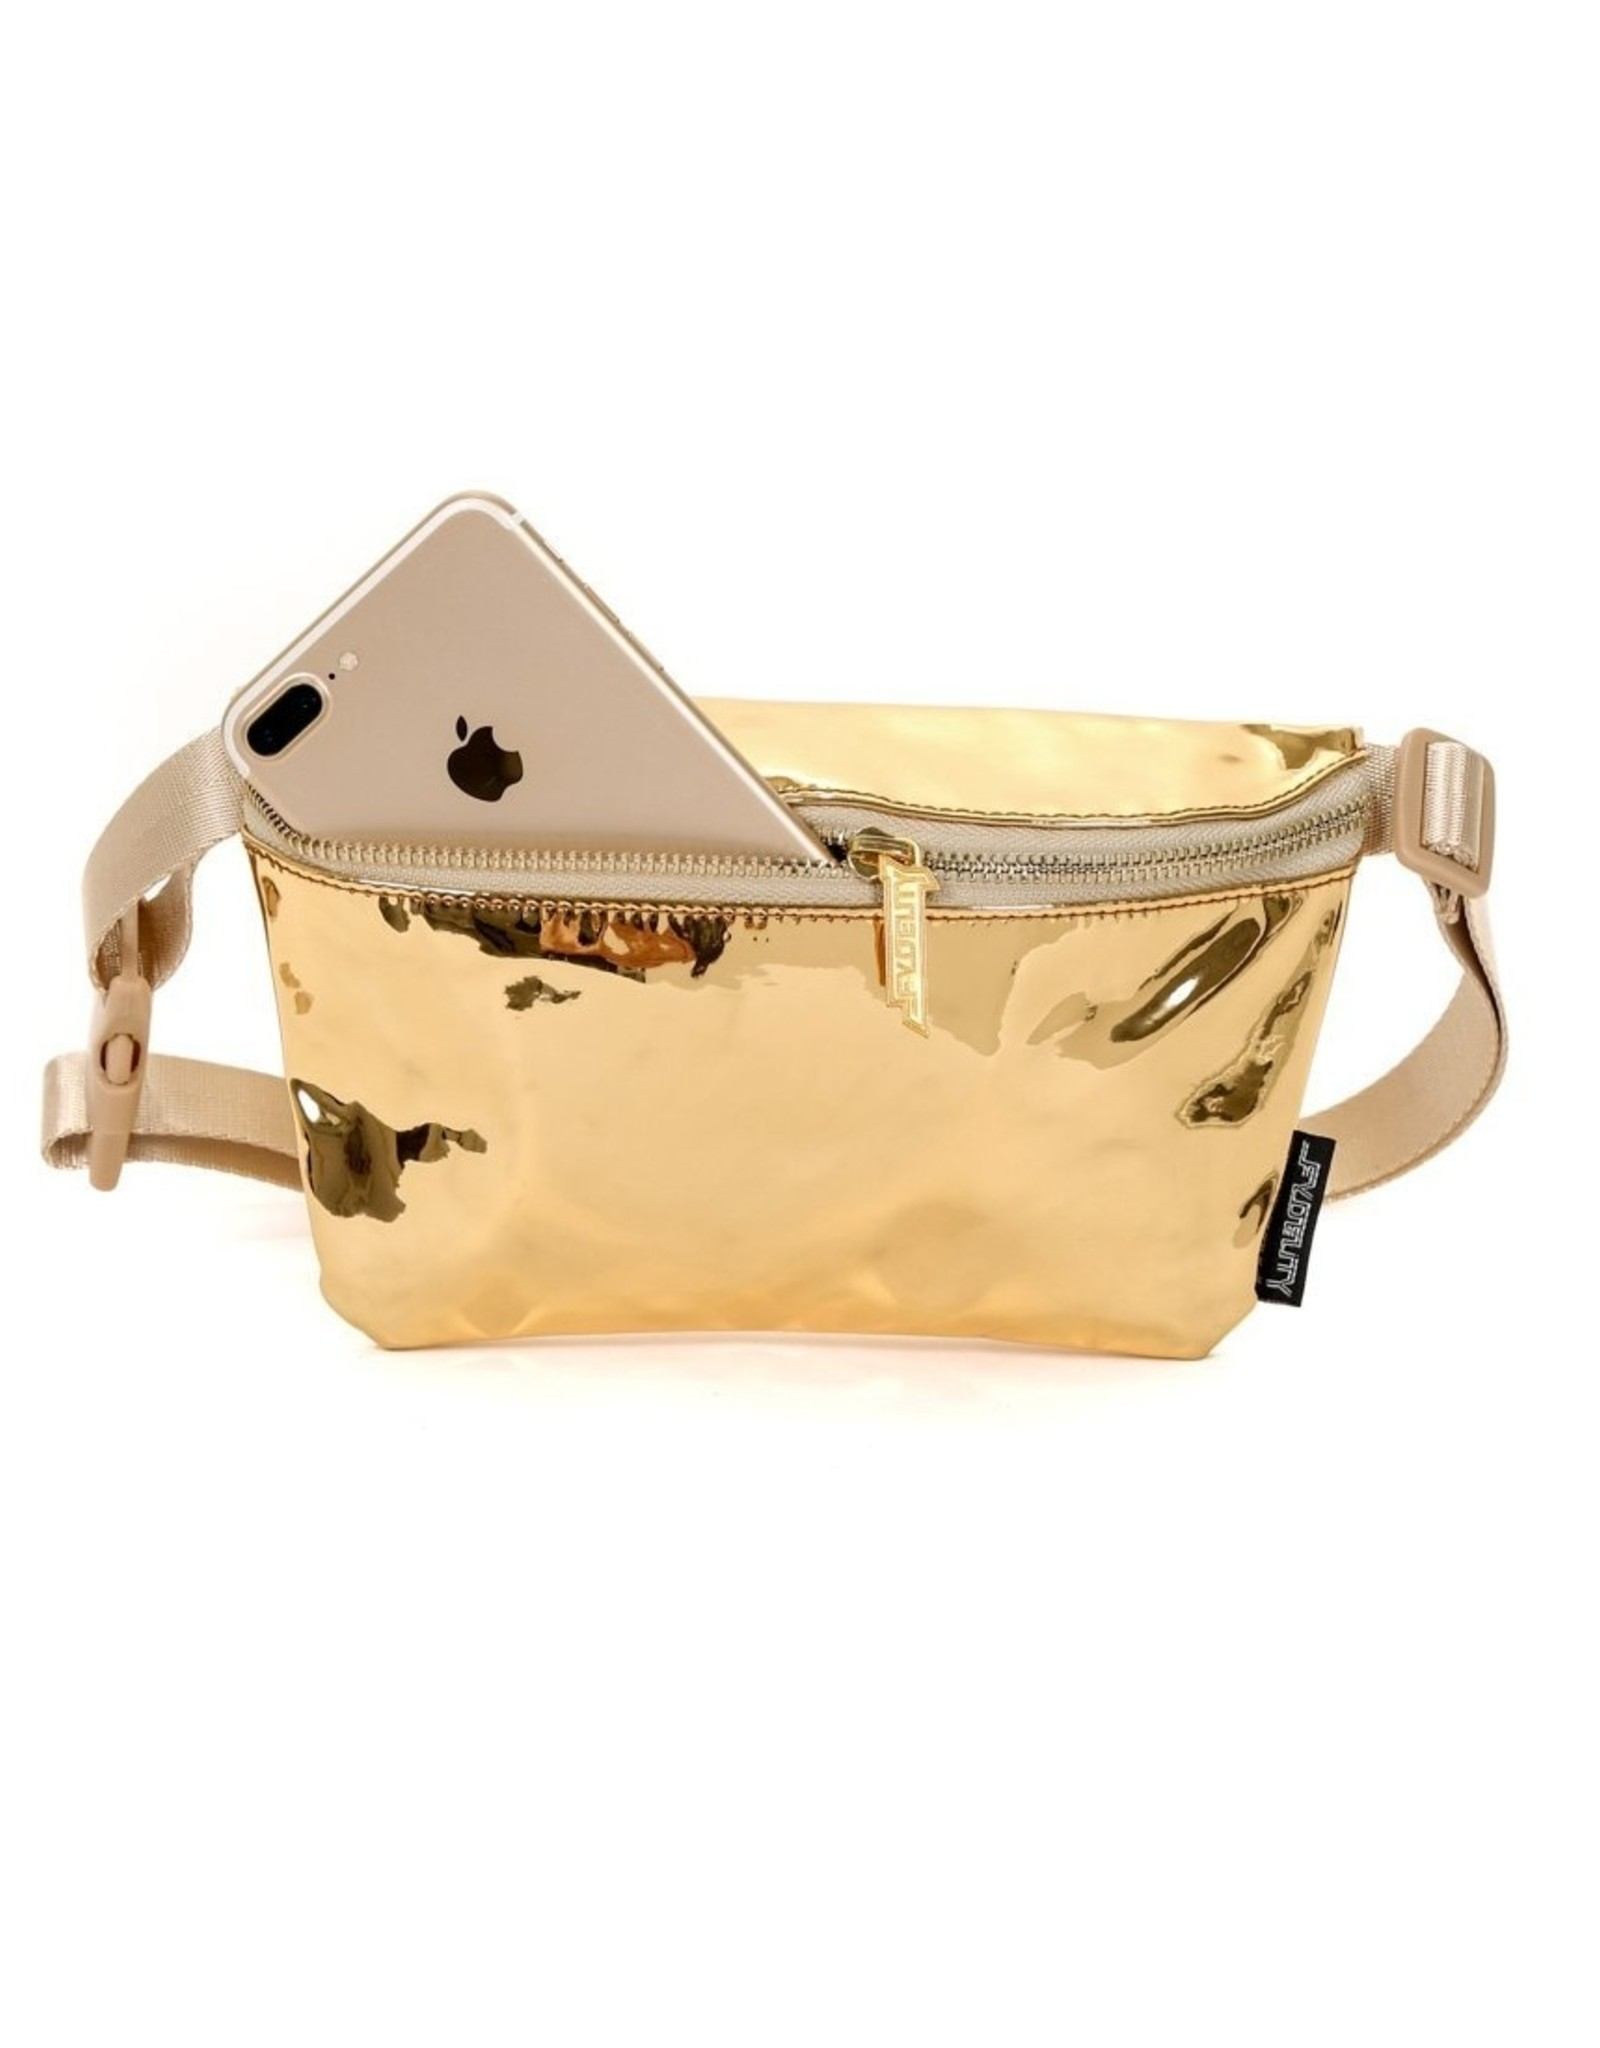 Scratchtracks Ultra Slim Fanny Pack: LUX Mirrored Gold